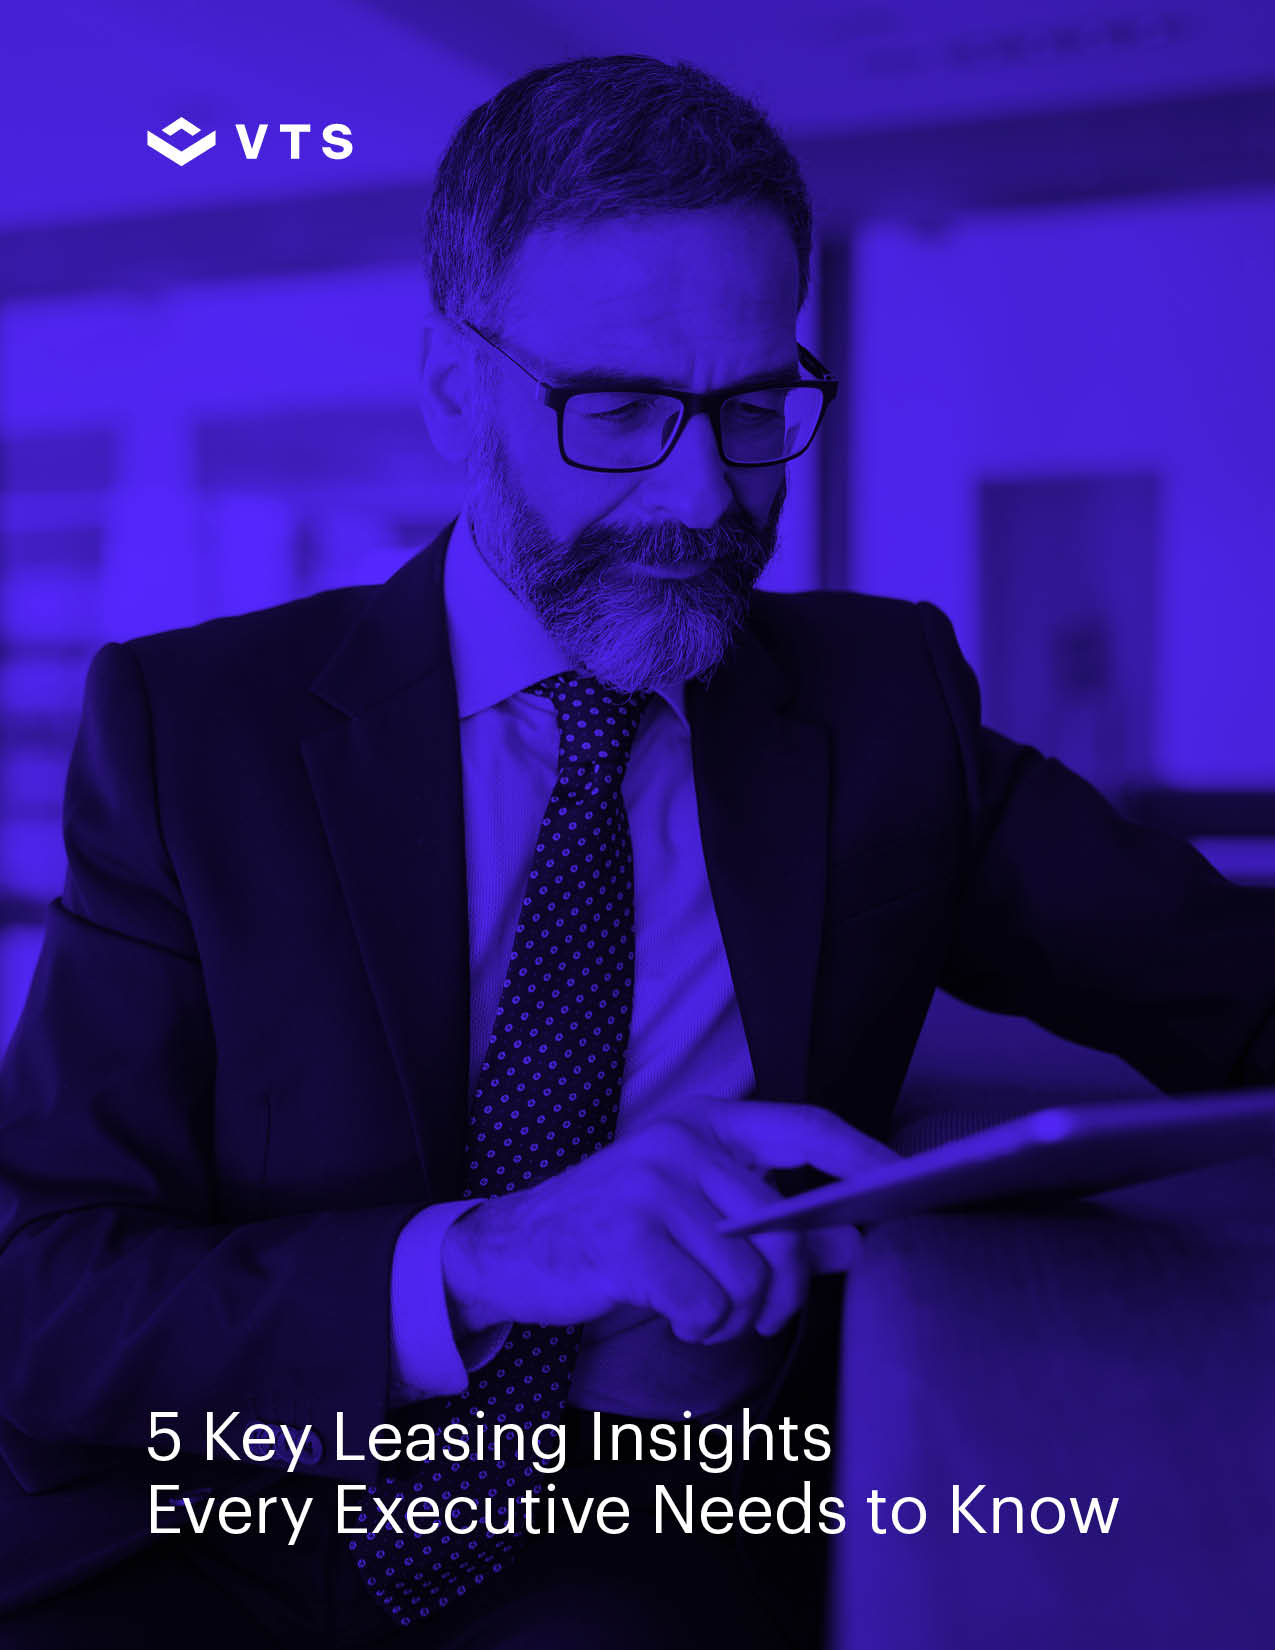 5 Key Leasing Insights Every Executive Needs to Know